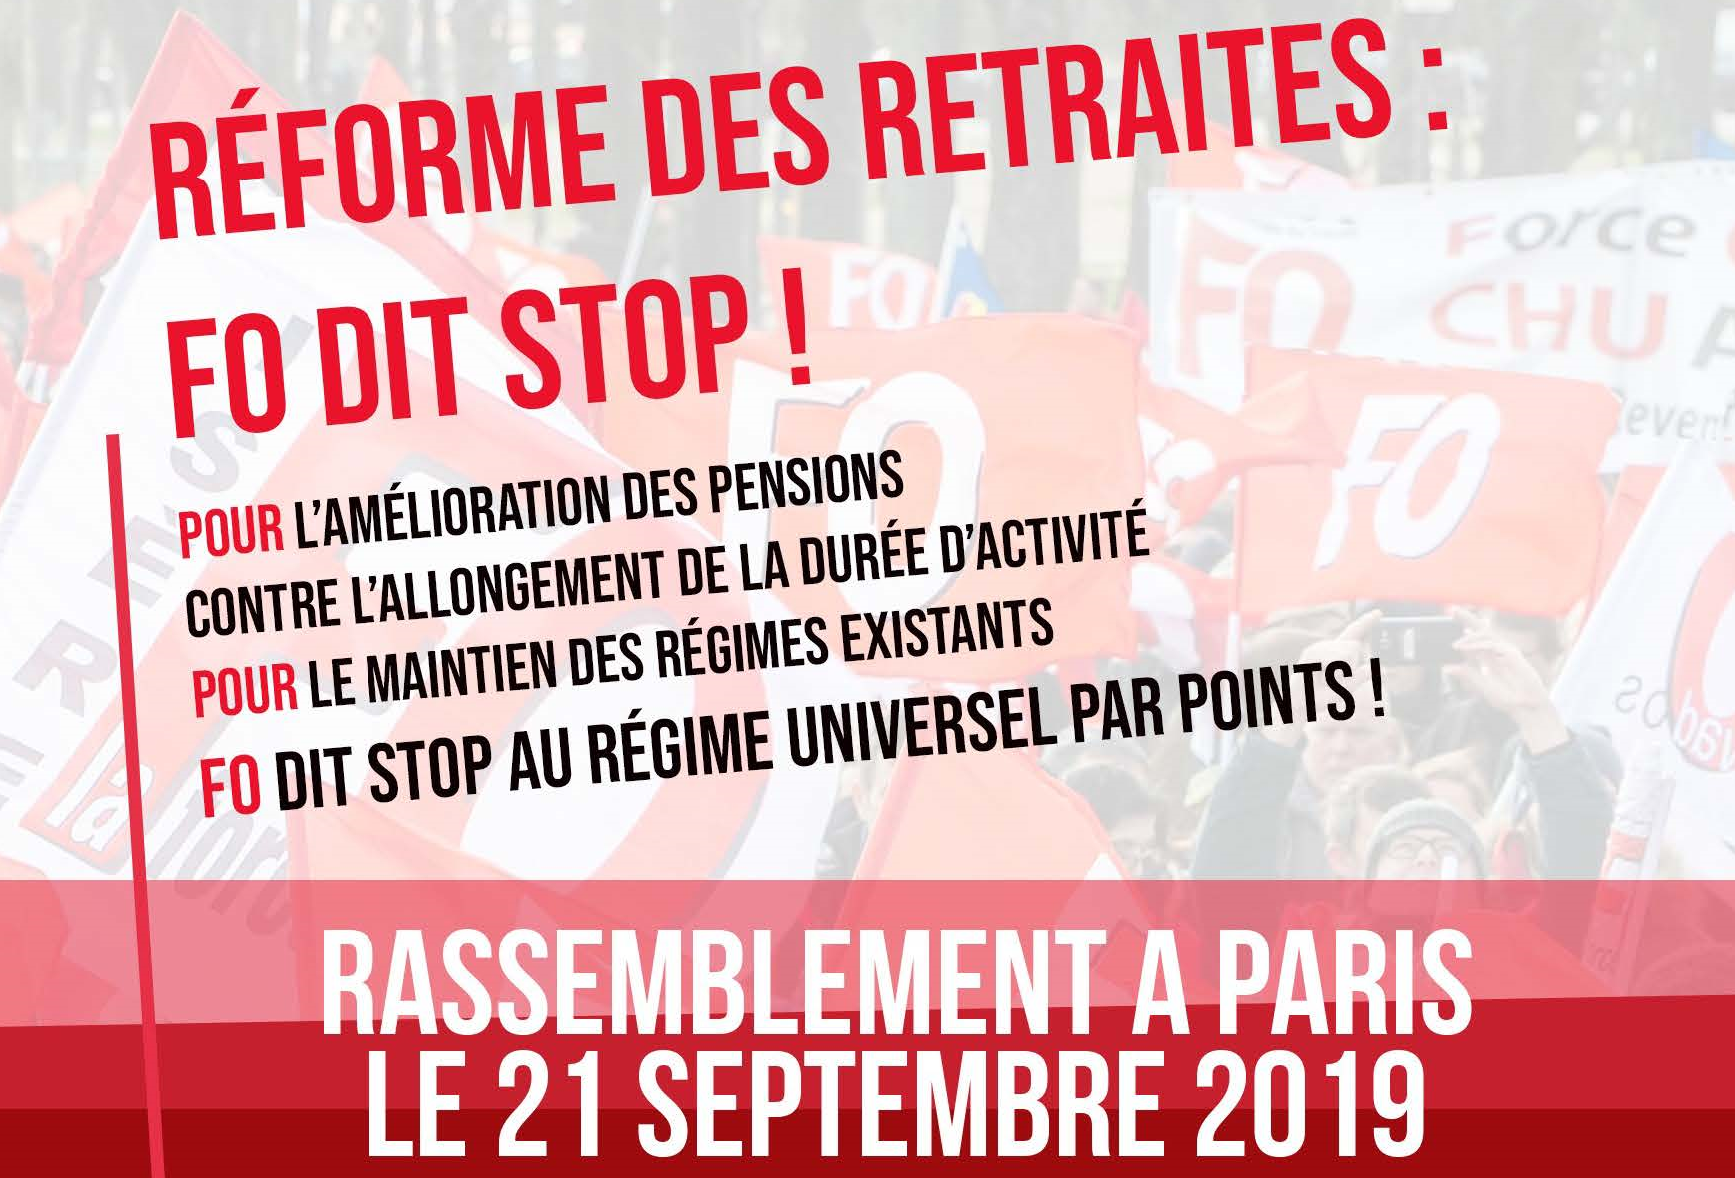 Affichette retraites stop capture